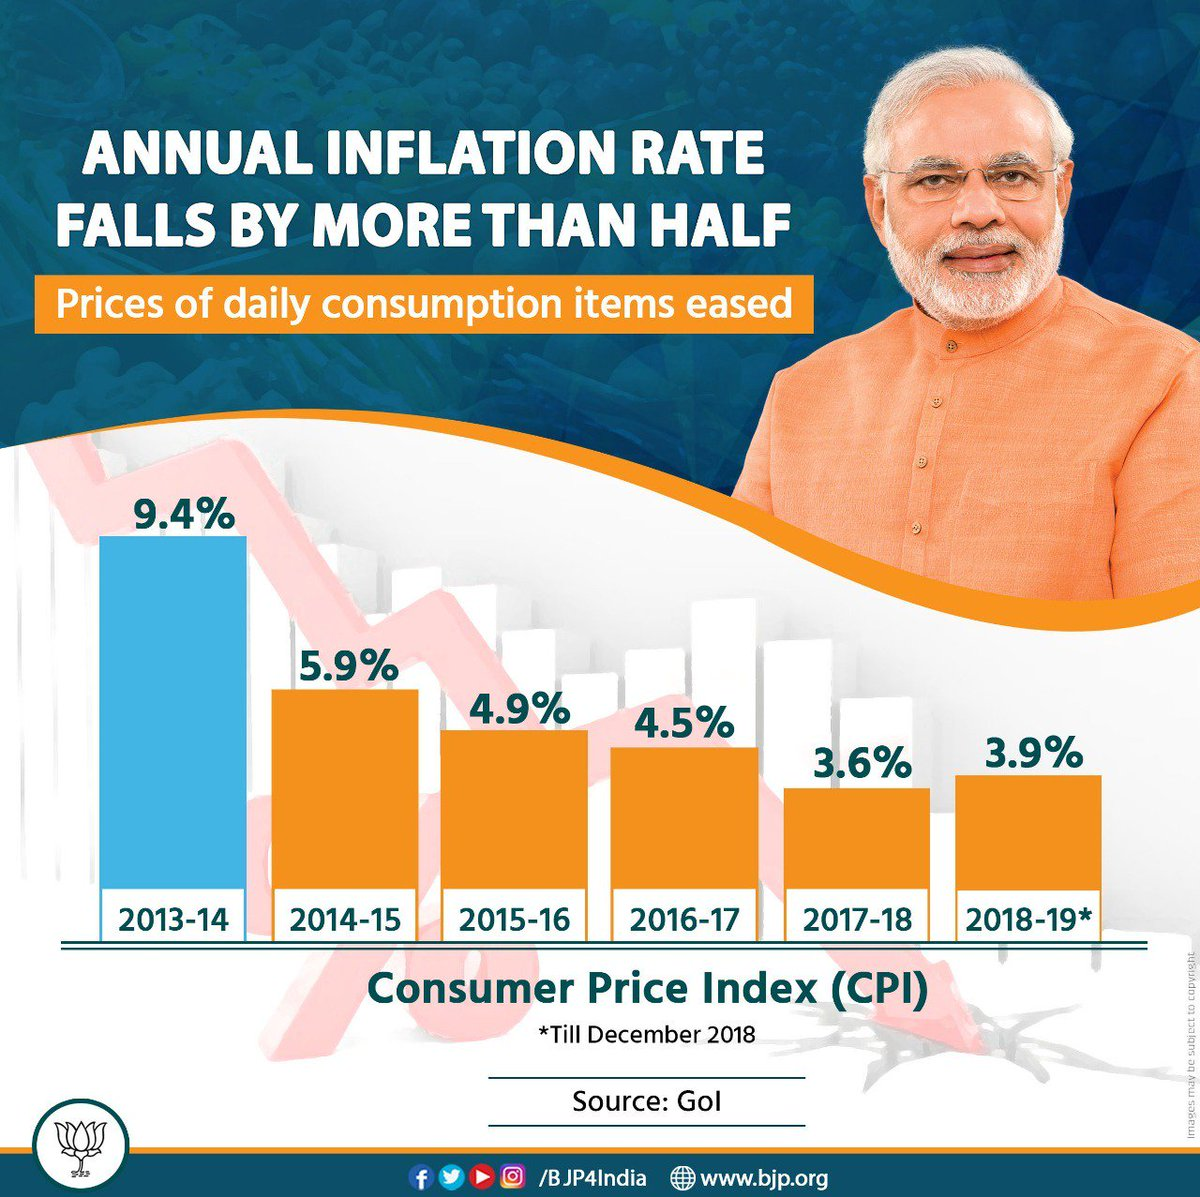 In 2013-14, the UPA Government left behind an annual inflation figure of 9.4%. However, Modi government's policies and reforms not only helped in arresting the inflation but bringing it down drastically.